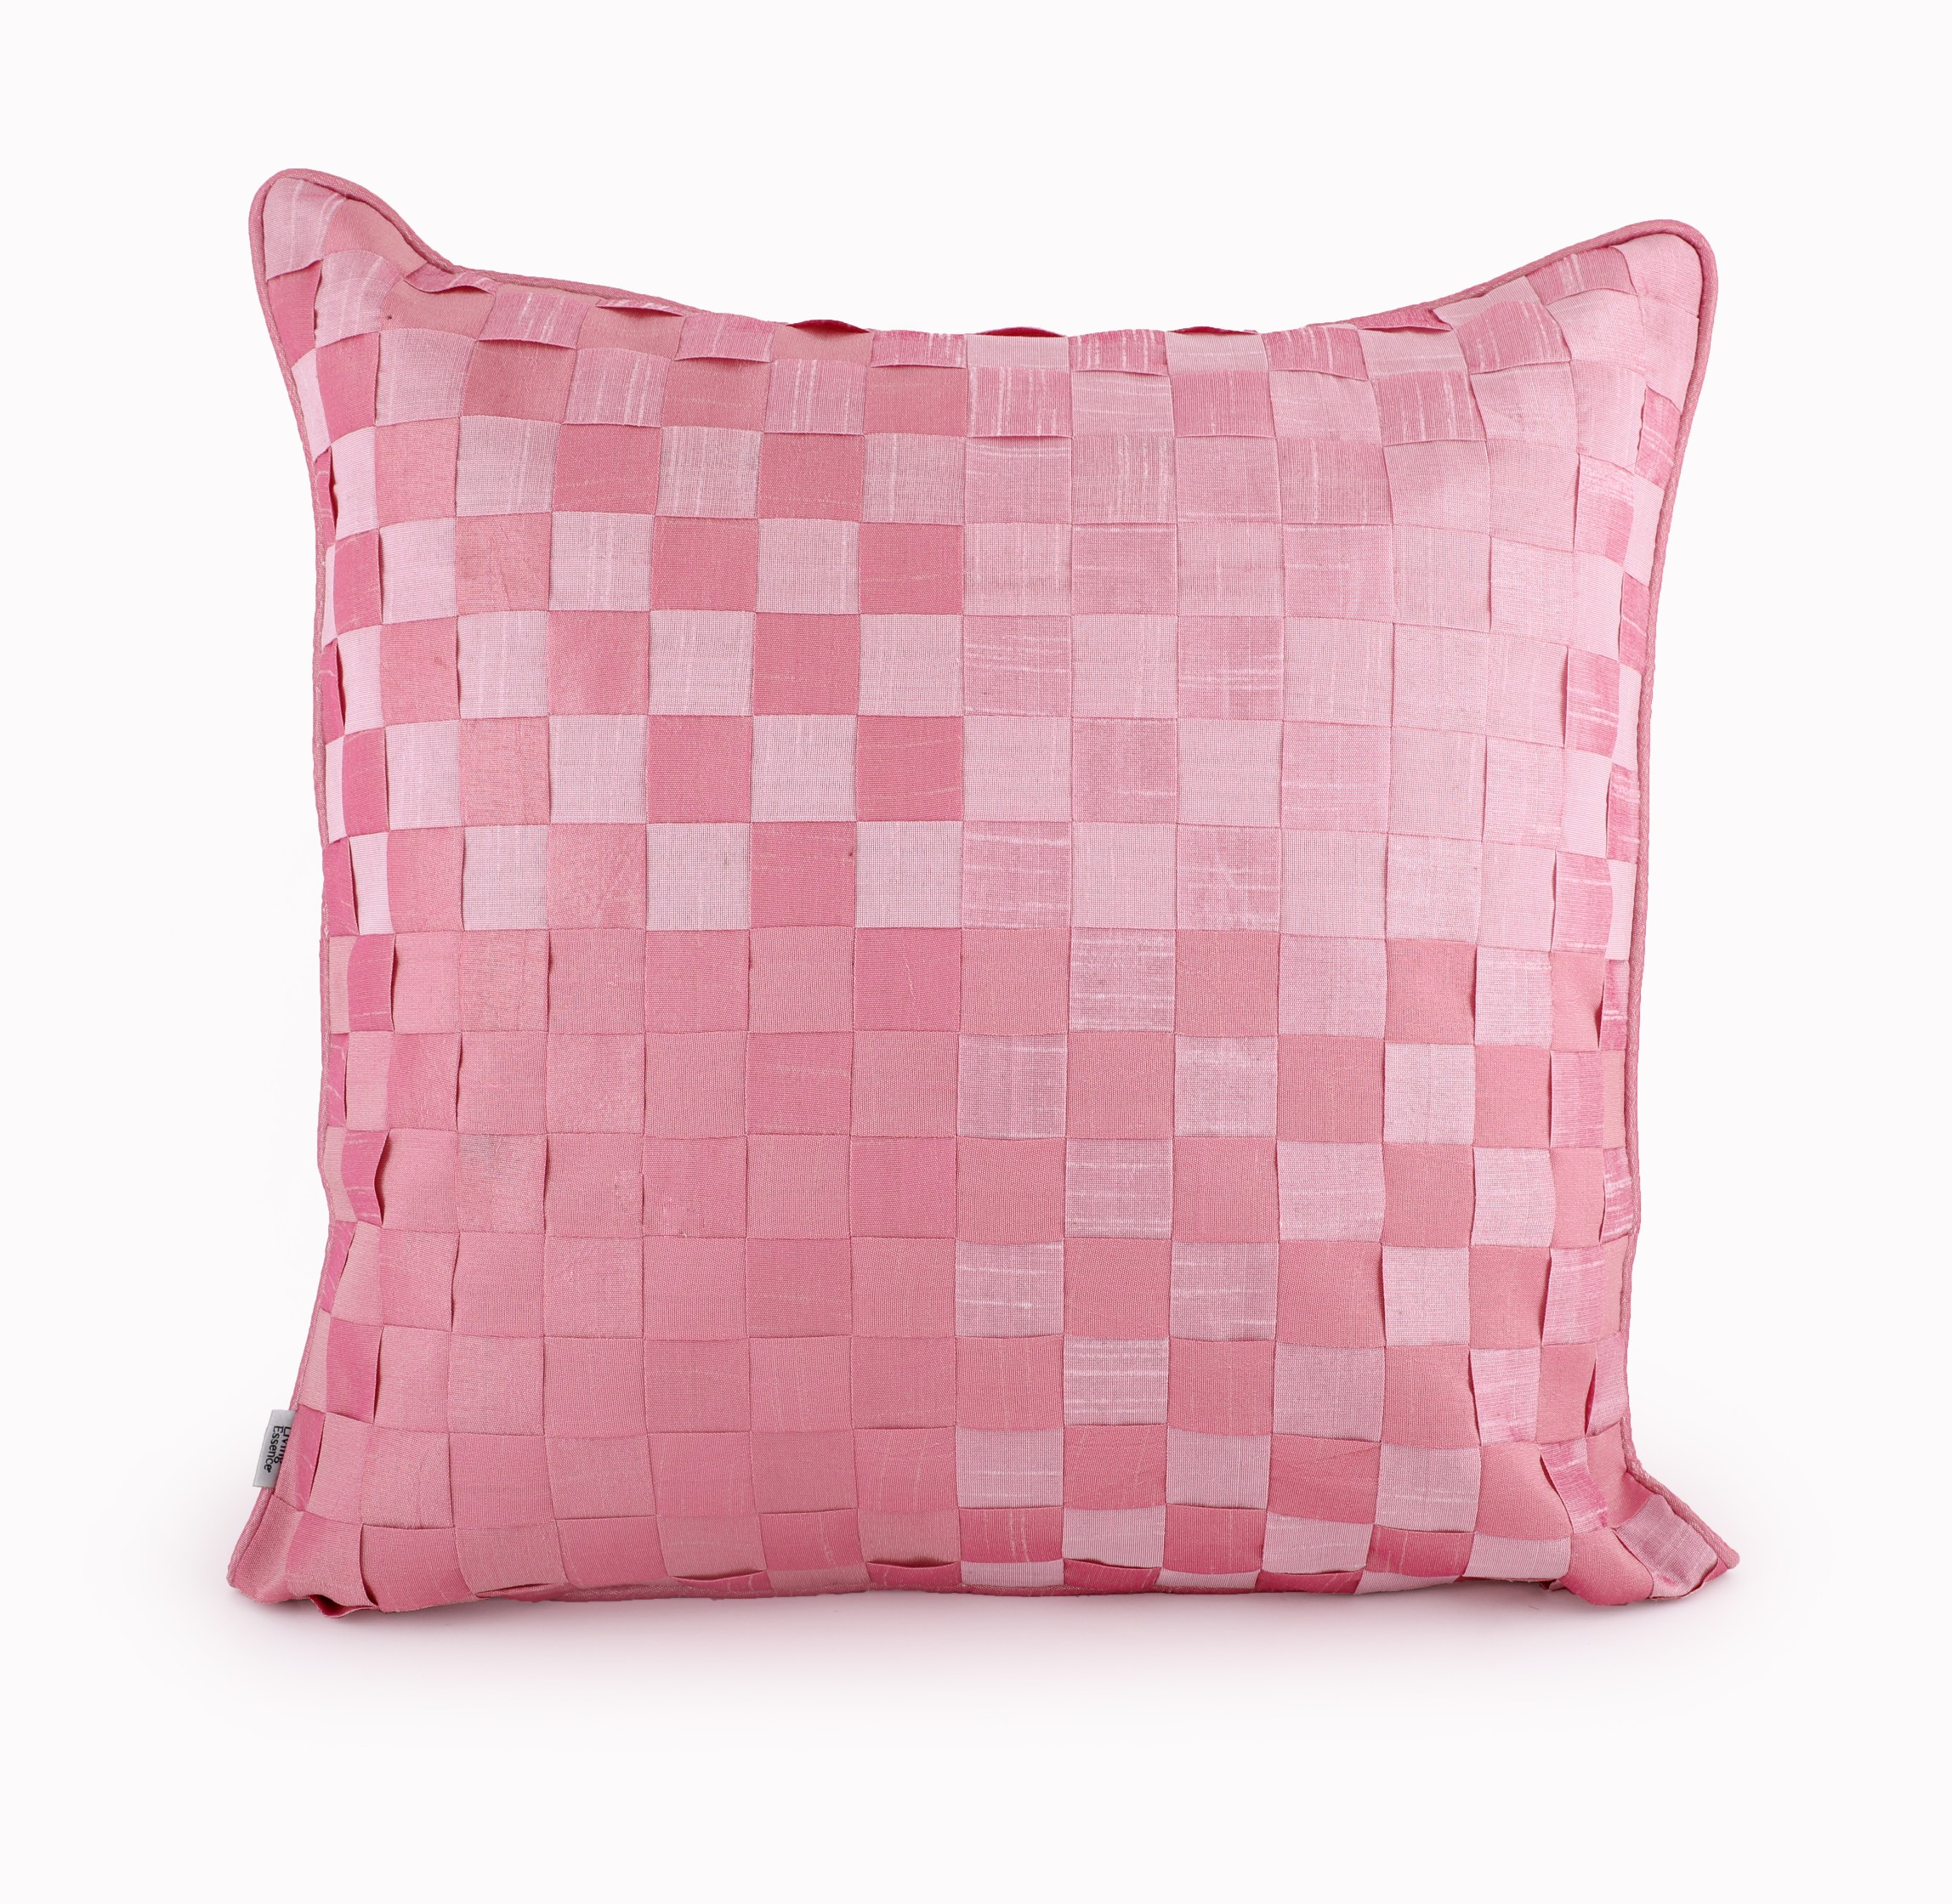 Basket Rose Cushion Cover Cotton Cushion Covers in Rose Colour by HomeTown